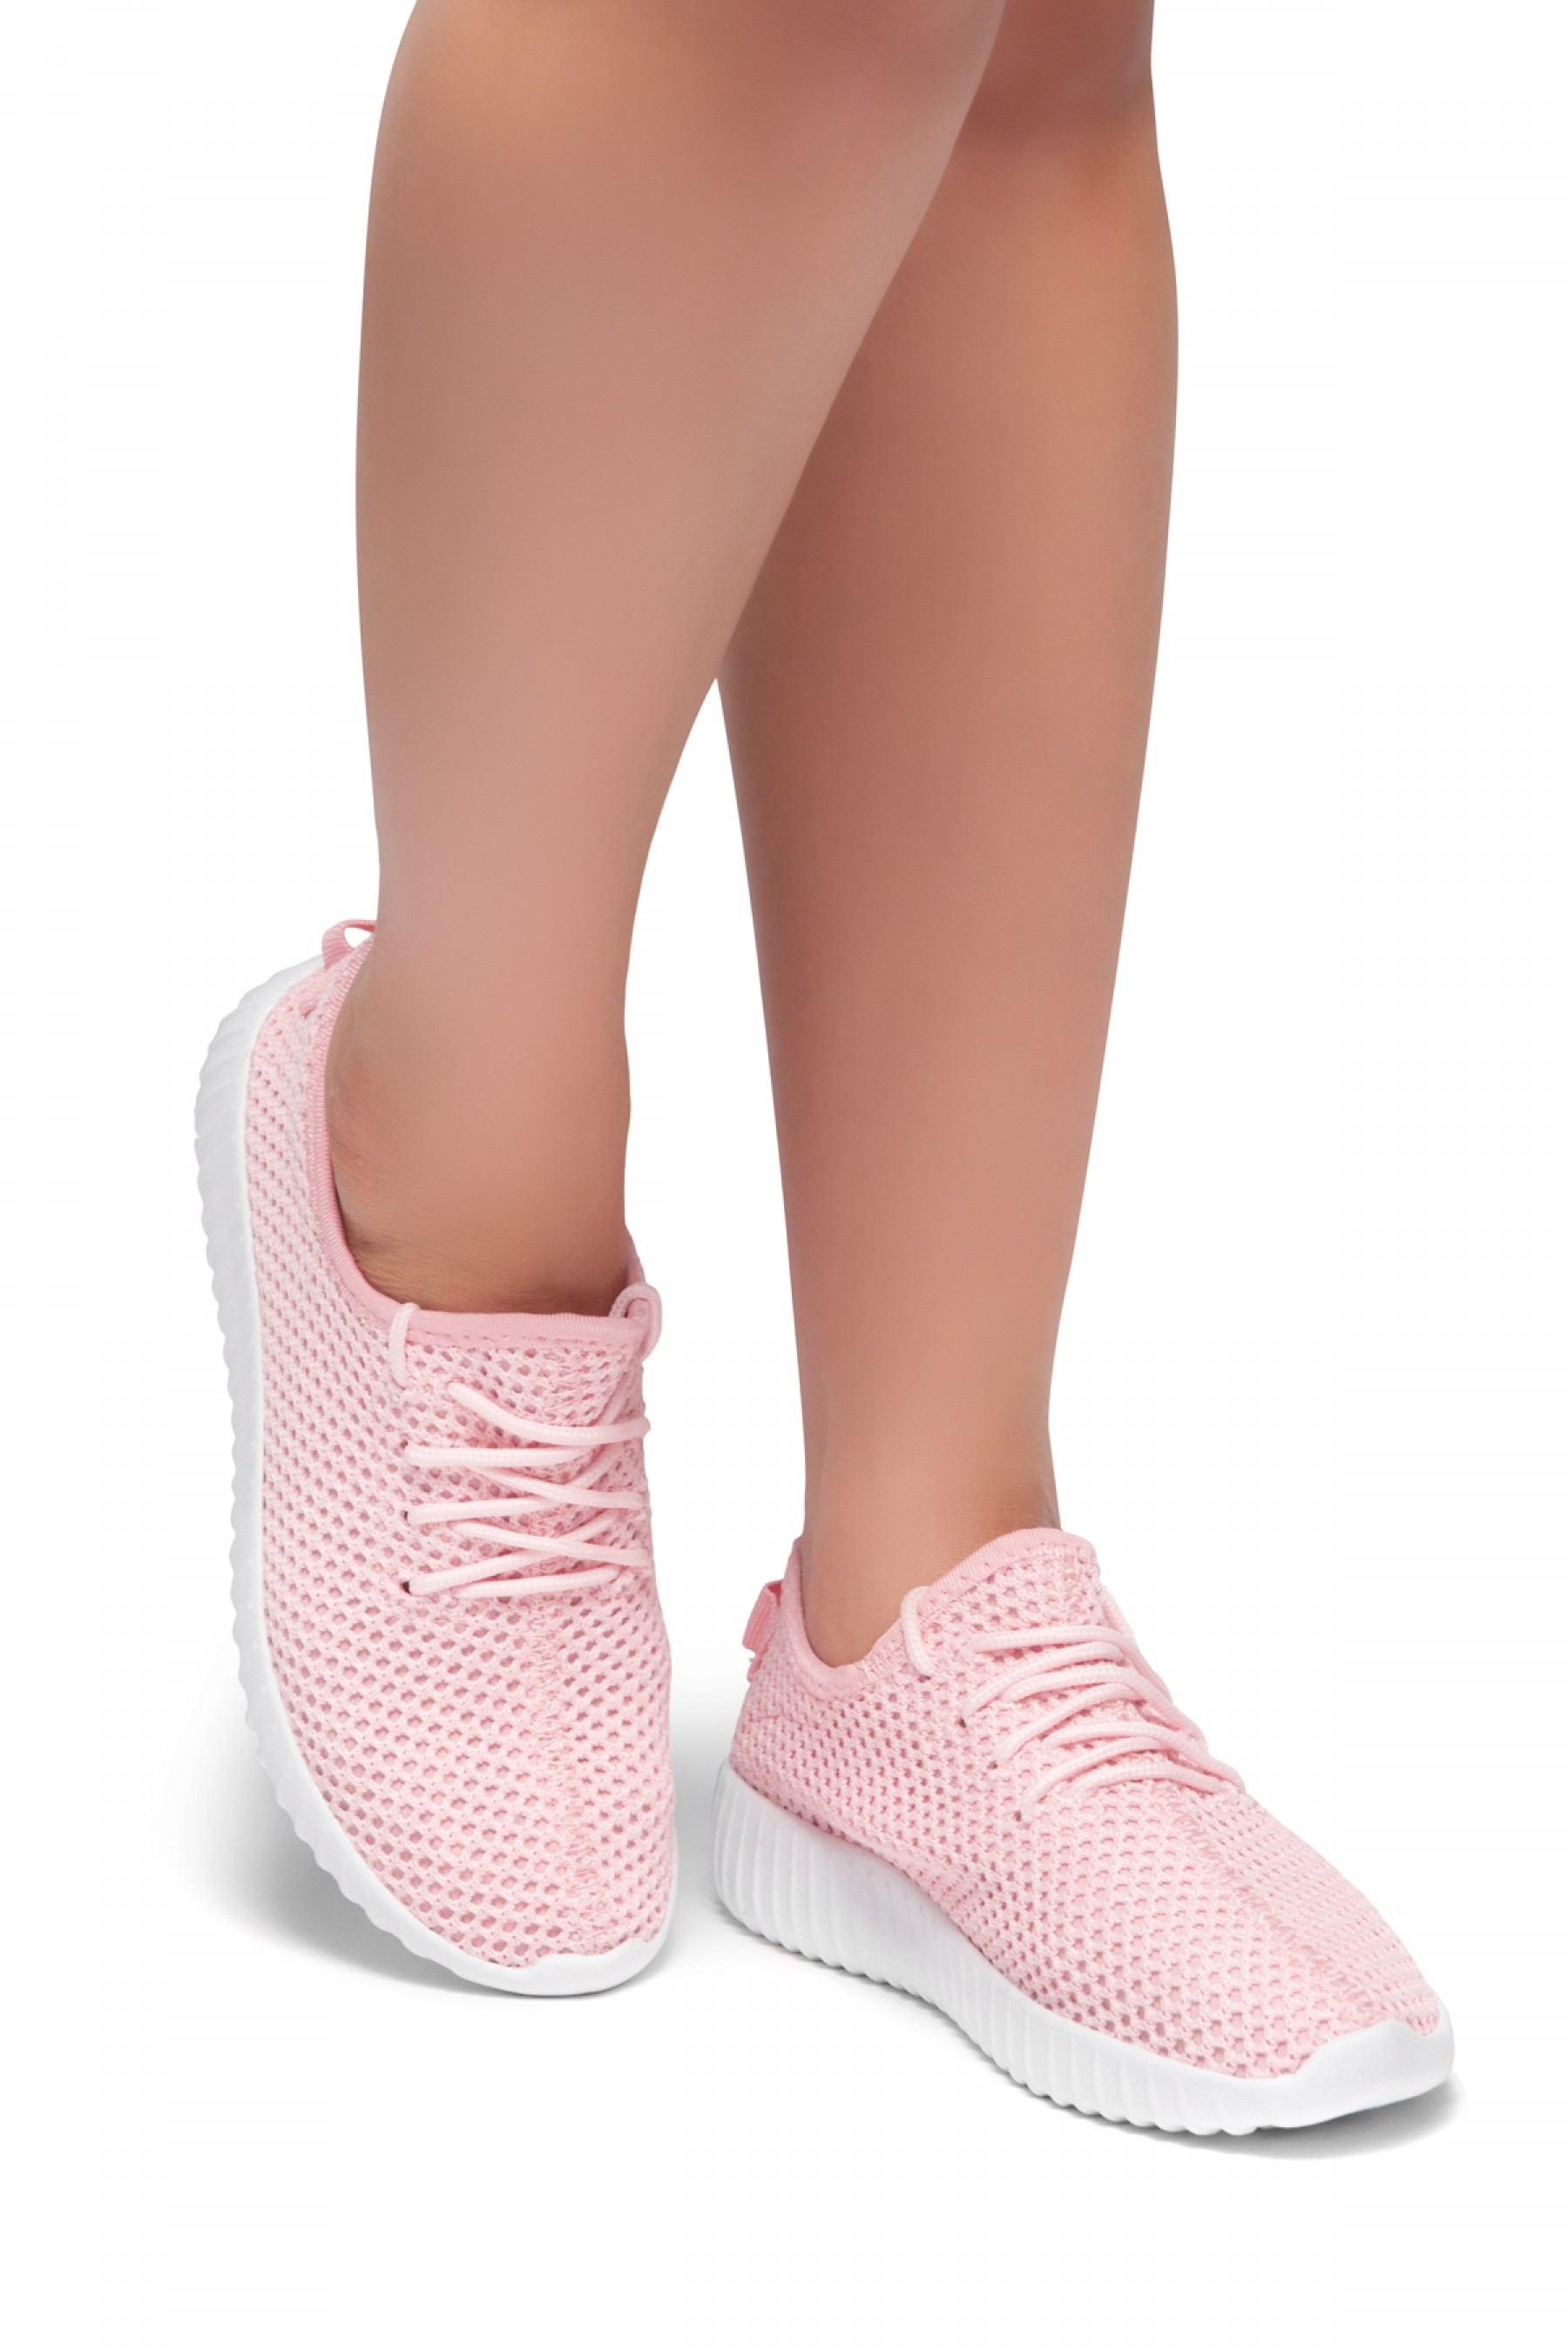 Herstyle Women's Manmade  Addon  Spec Flyknit Contrast Sneakers - Pink/White